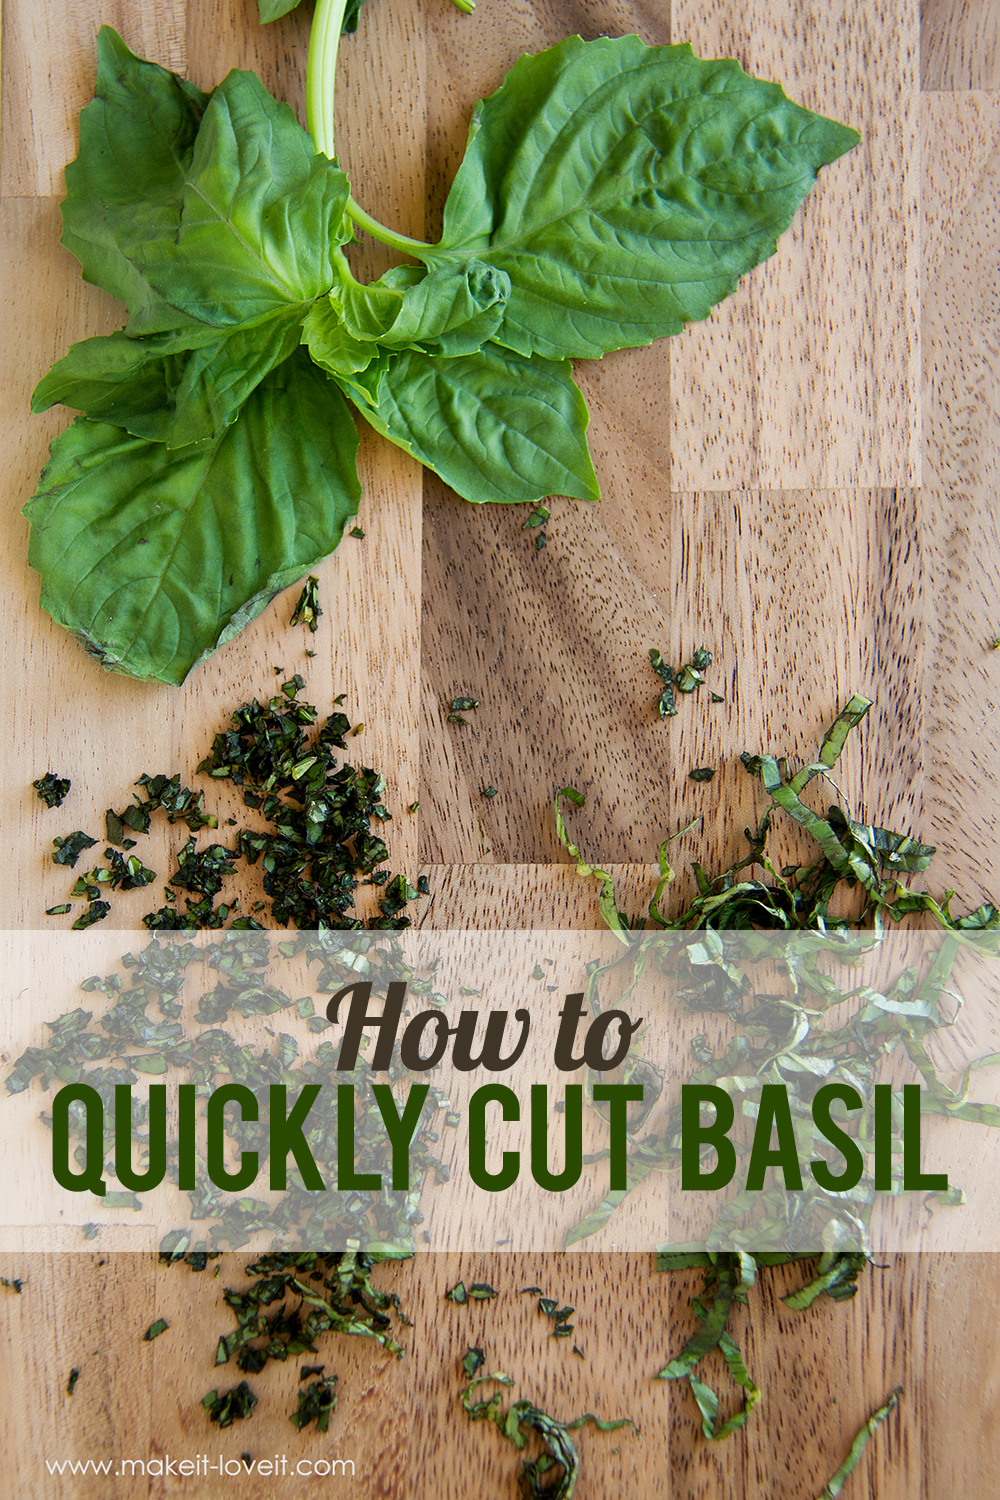 How to quickly cut basil main